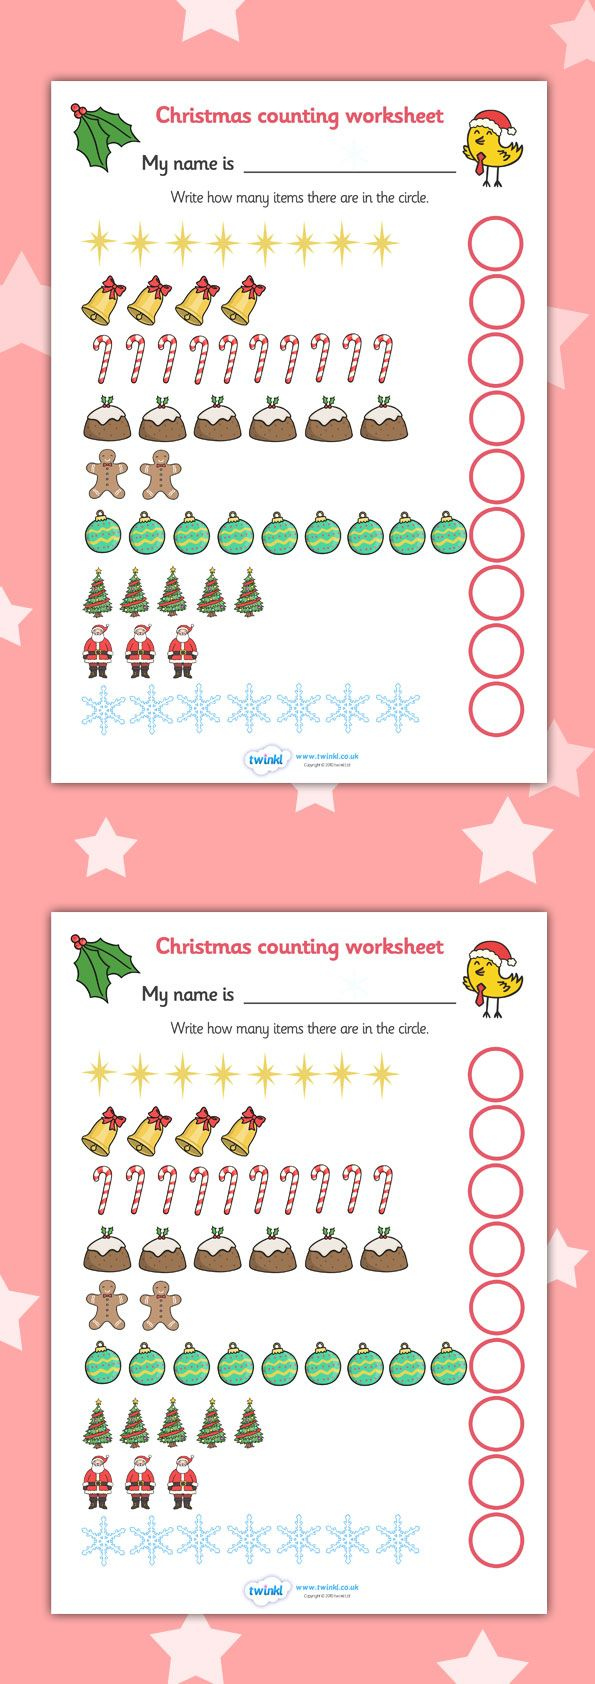 Nice Lkg Worksheets Maths Images - Worksheet Mathematics Ideas ...